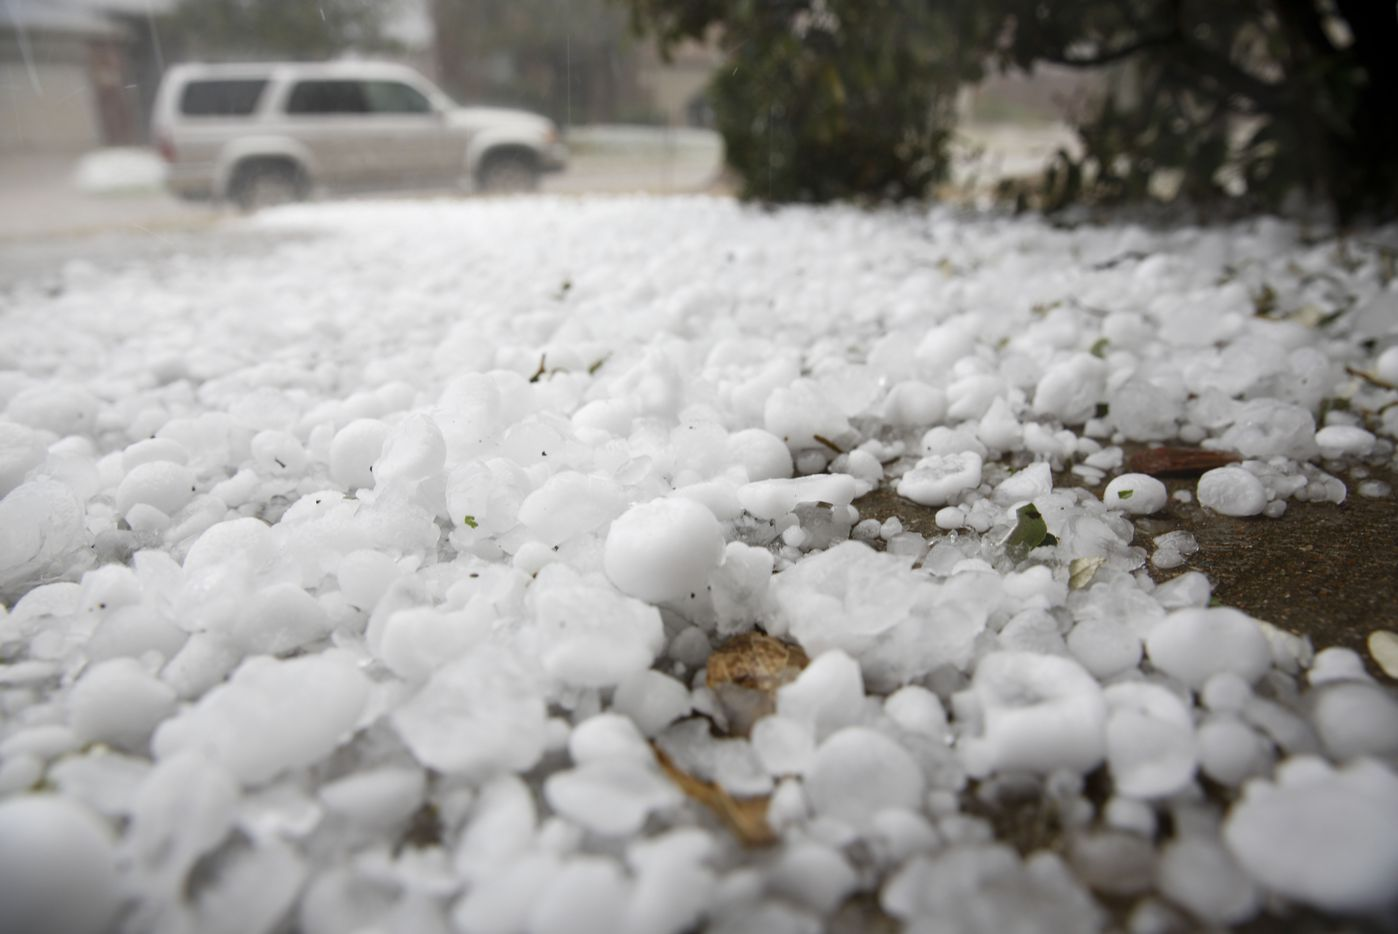 Hail pounded houses and cars in the City of McKinney as a severe storm passed through on Sunday, March 24, 2019.